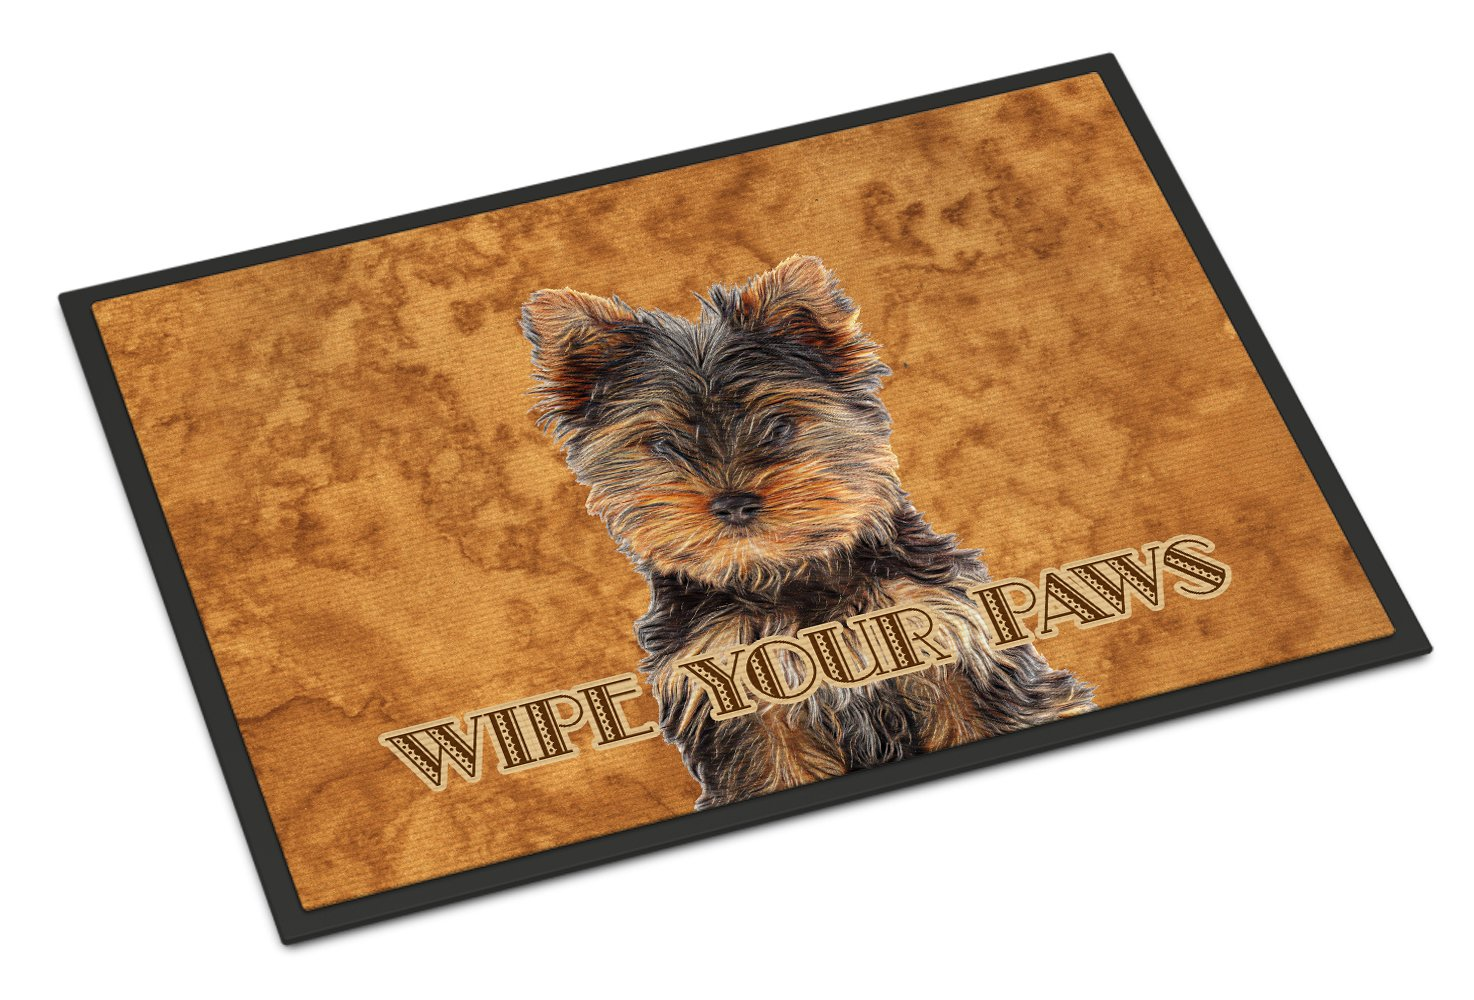 Yorkie Puppy / Yorkshire Terrier Wipe your Paws Indoor or Outdoor Mat 24x36 KJ1223JMAT by Caroline's Treasures